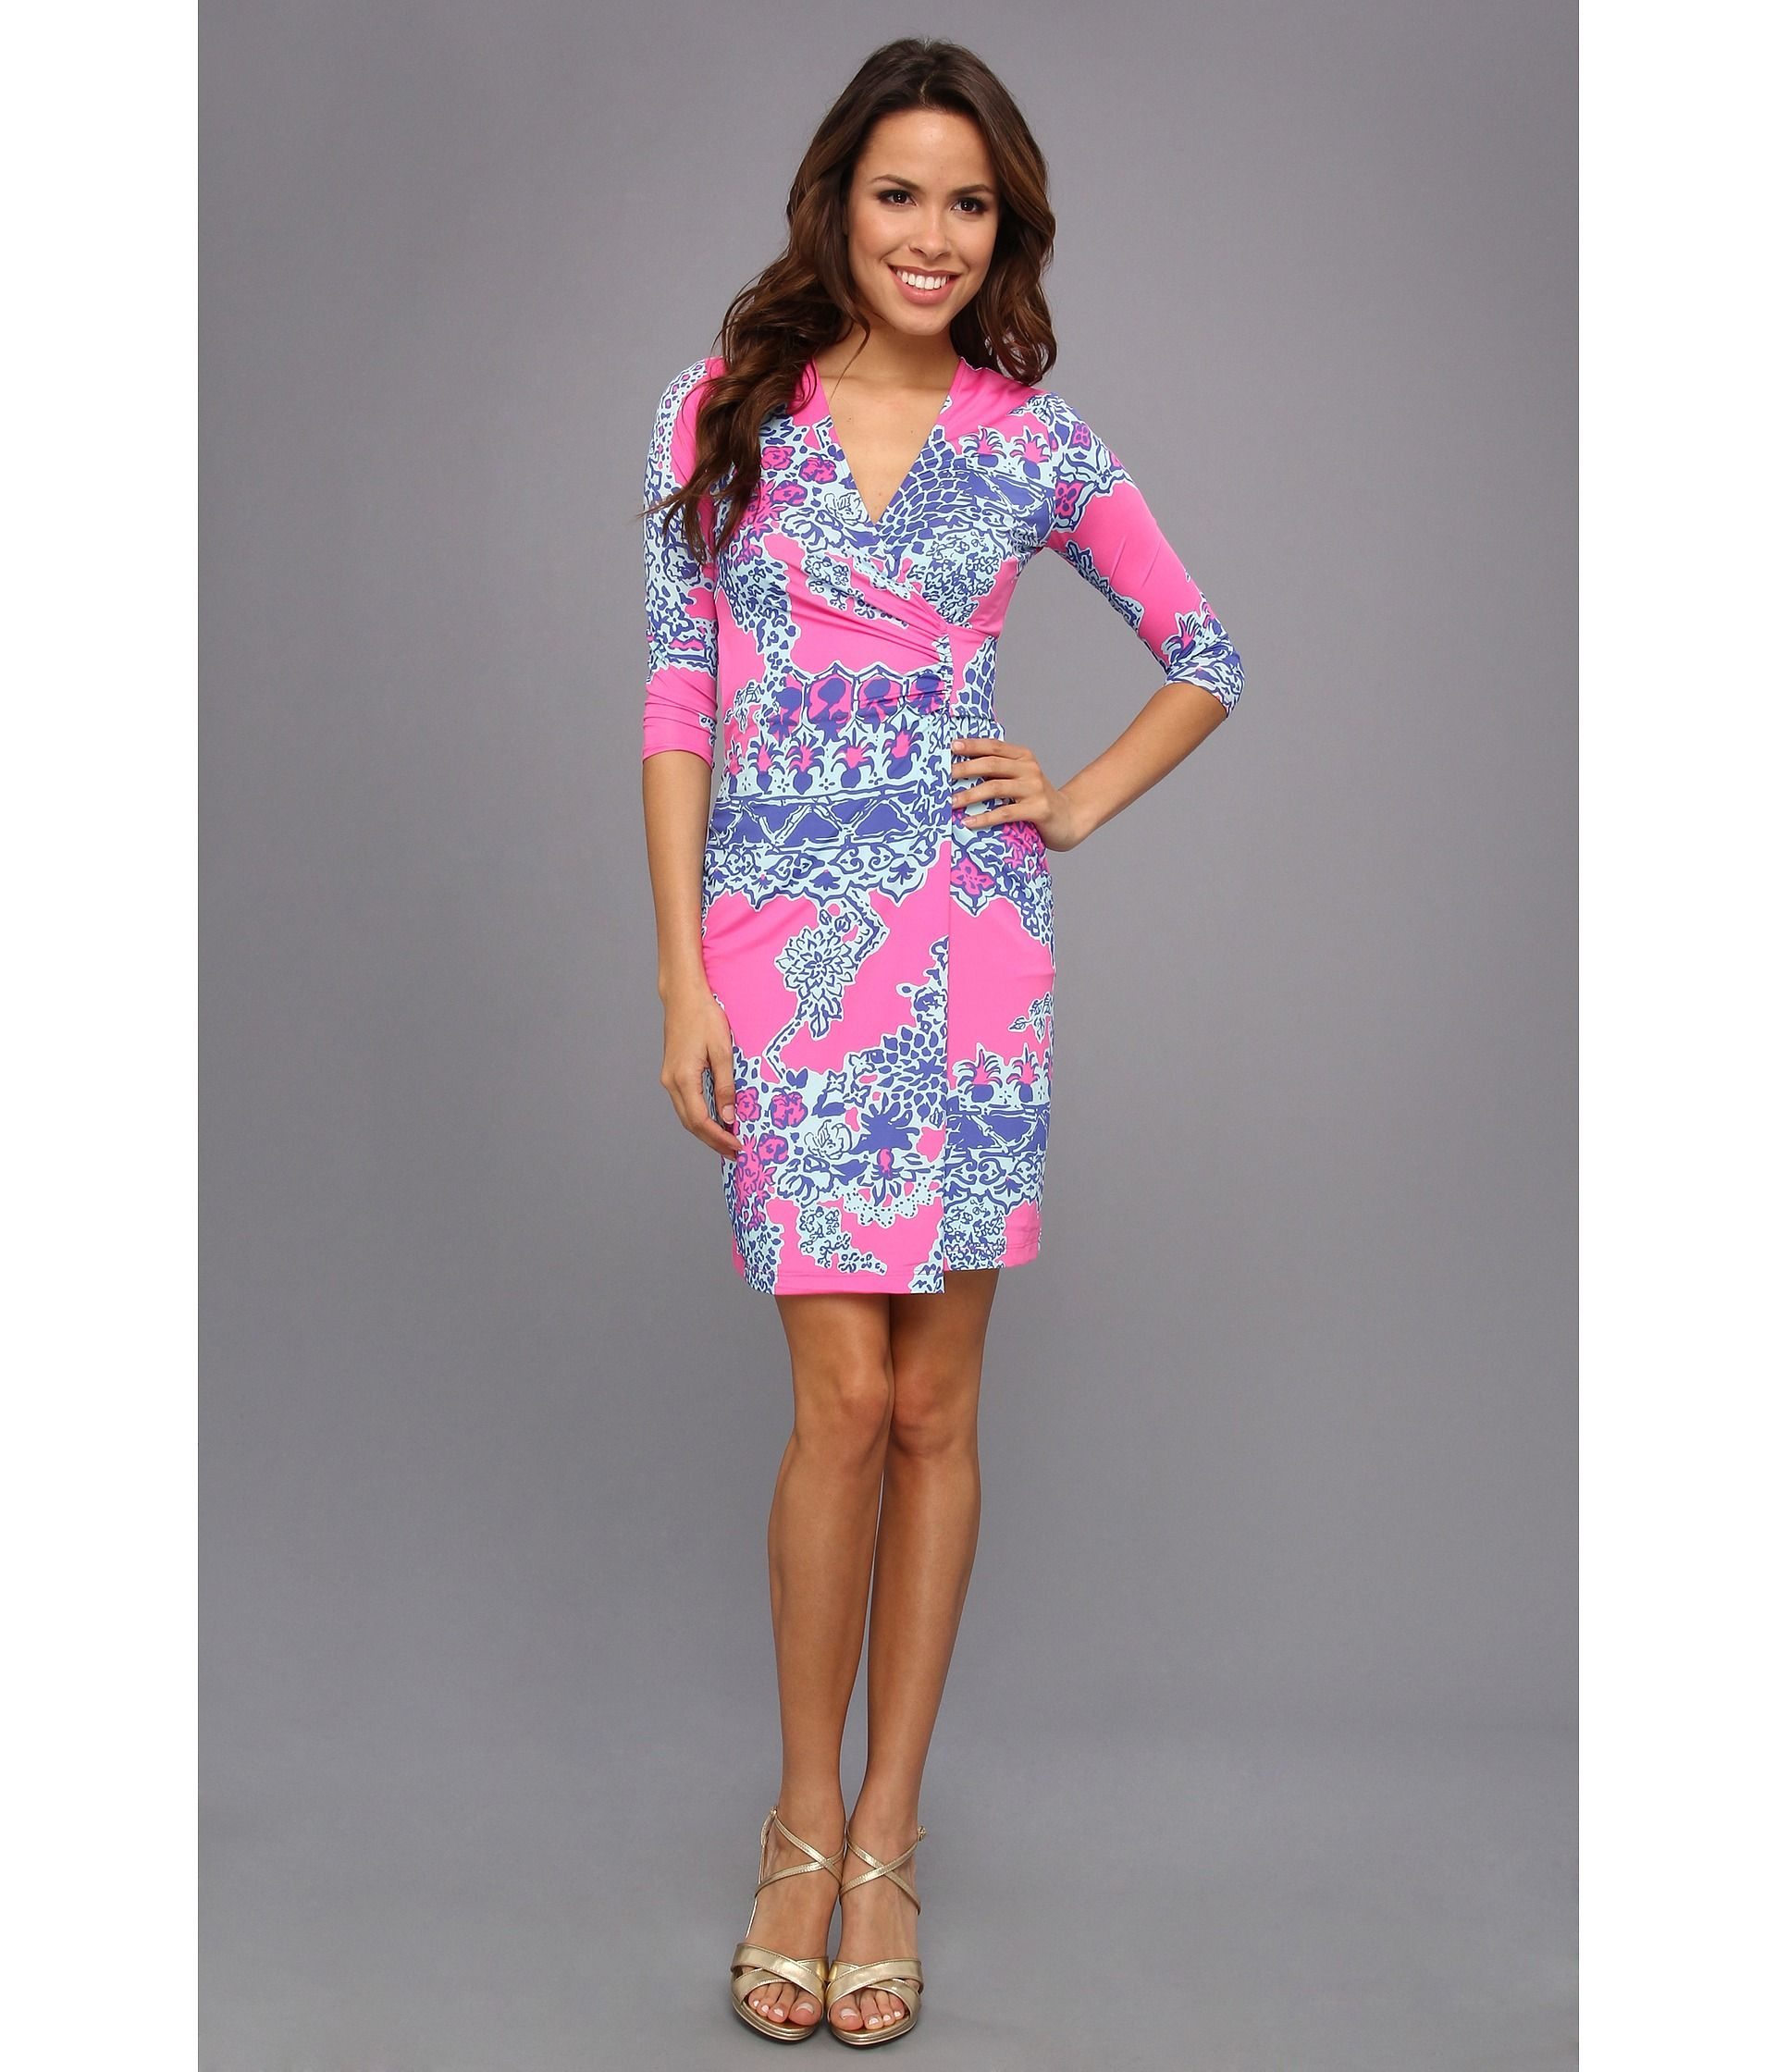 Lilly Pulitzer Yvette Dress Pop Pink On The Square 178 00